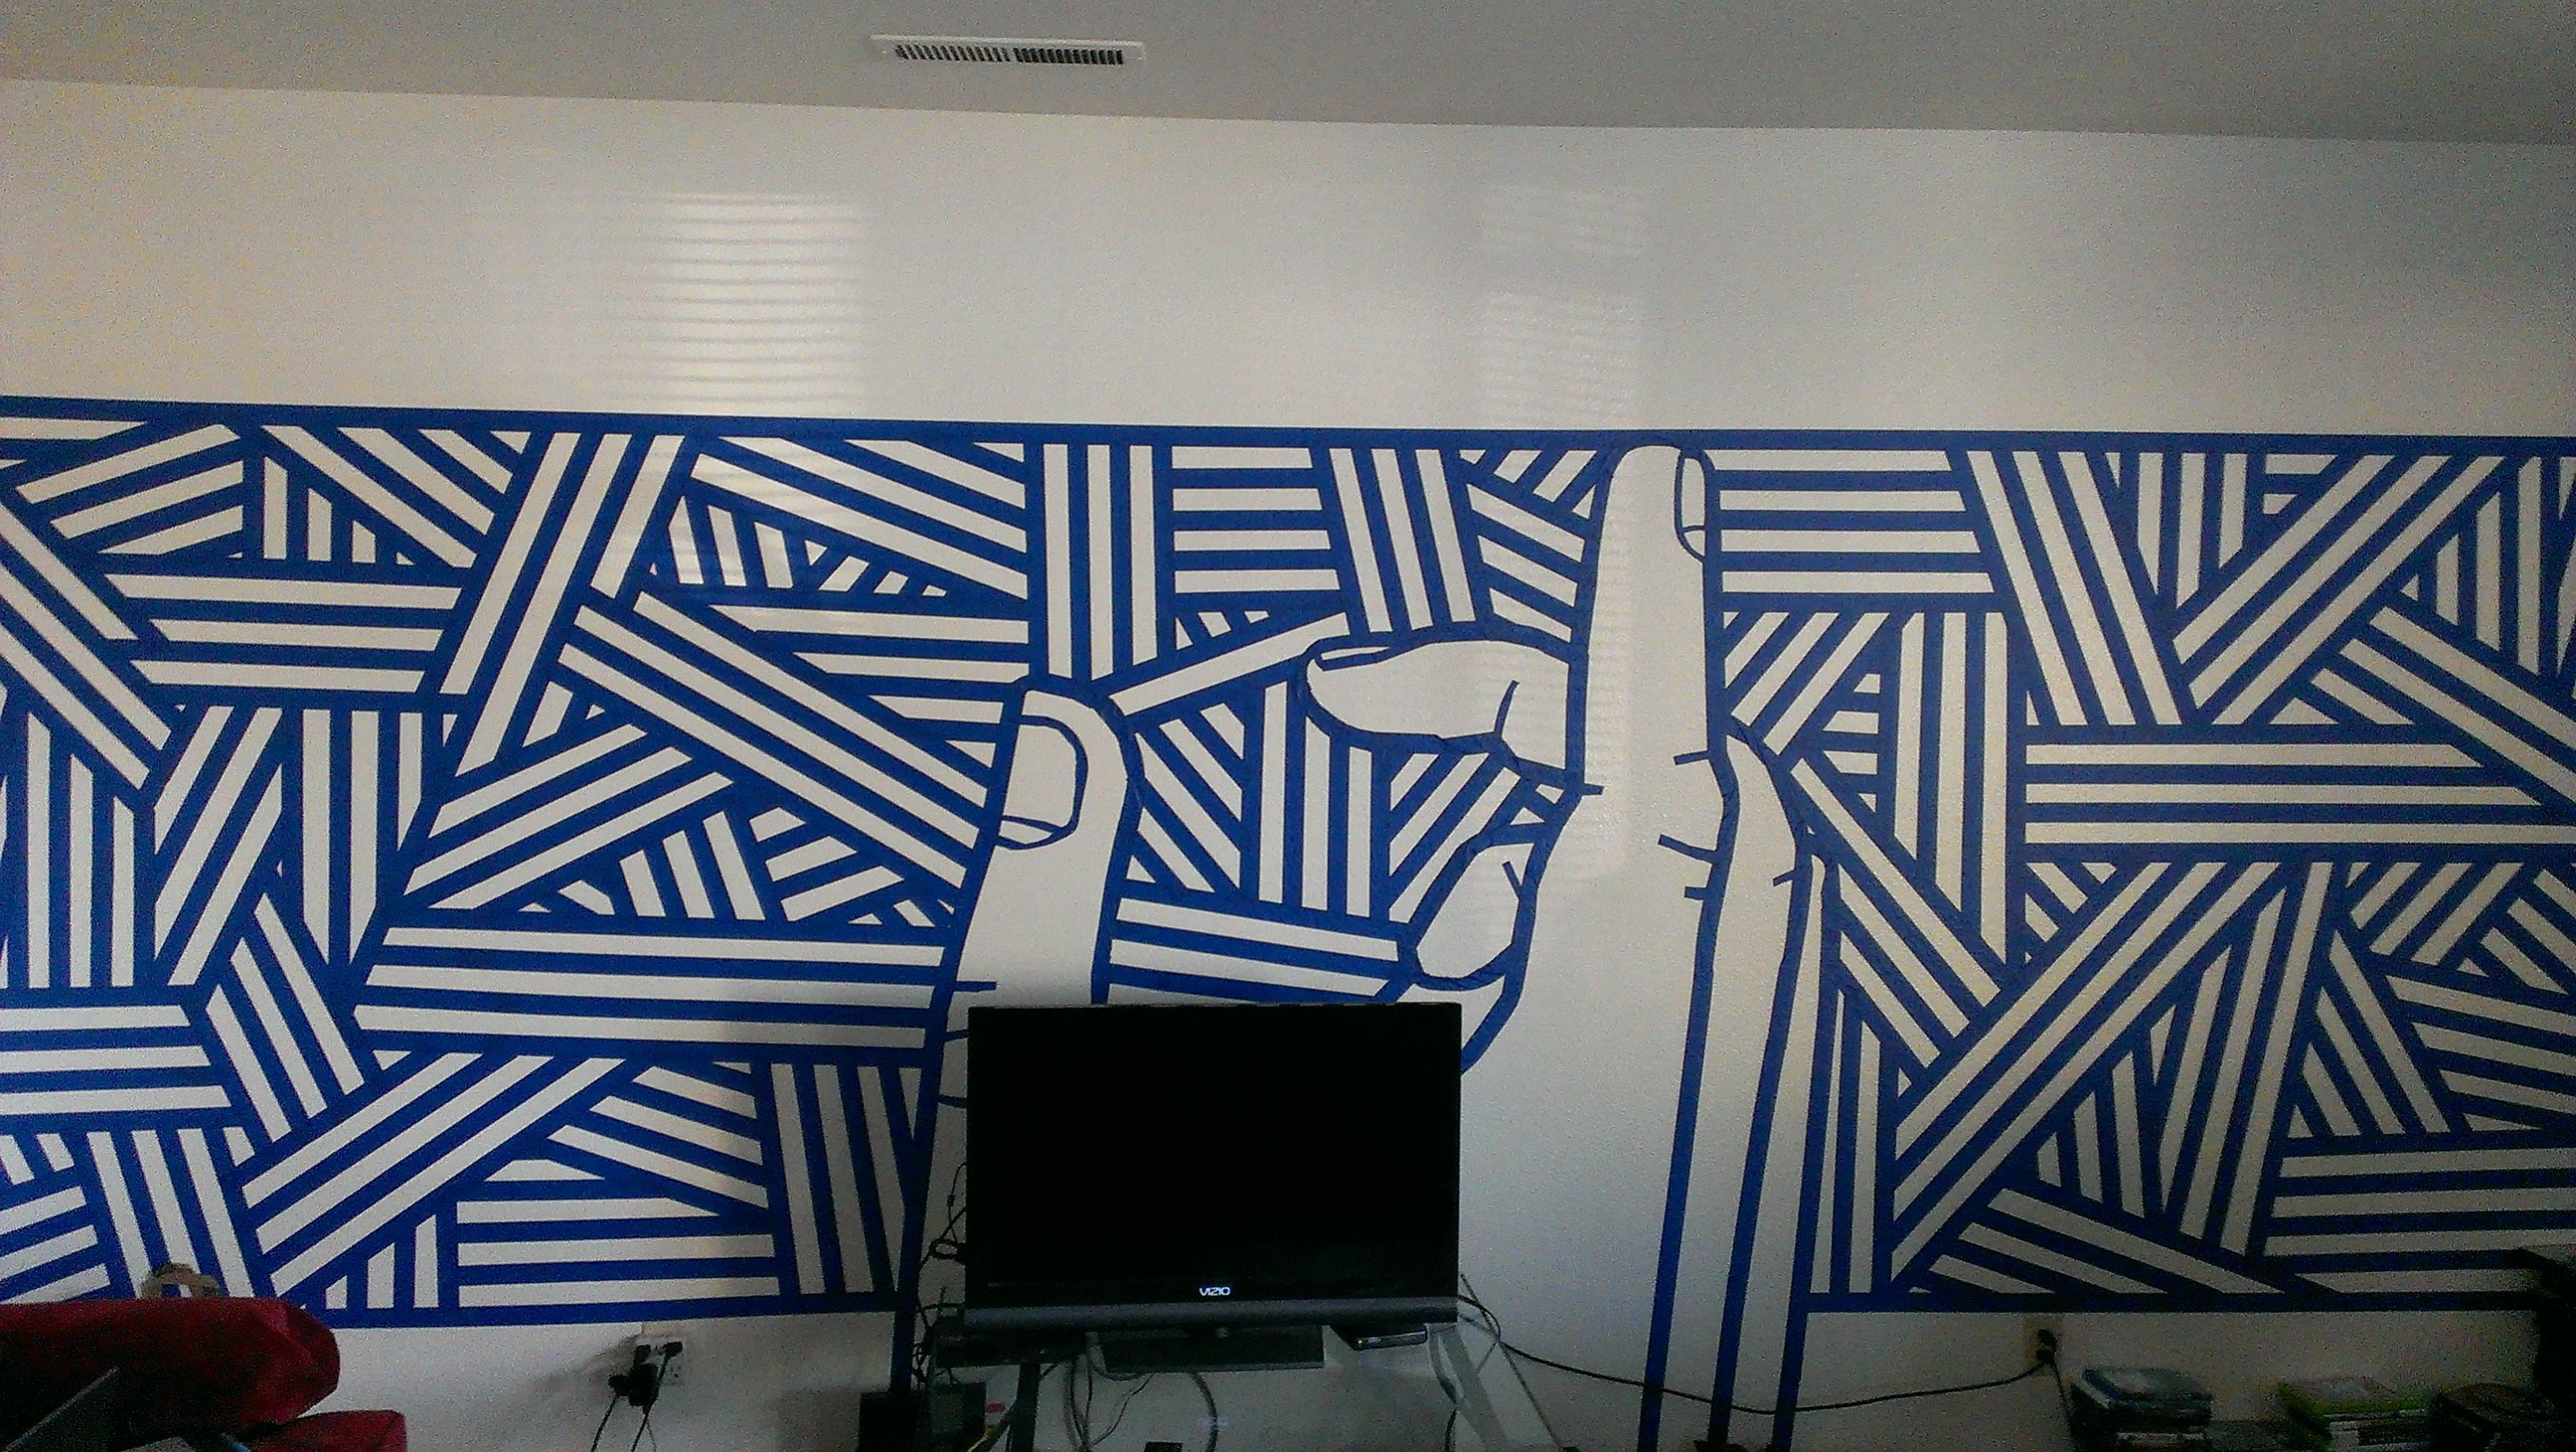 3 Rolls Of Blue Tape 6 Hours And Boredom And Now I Have